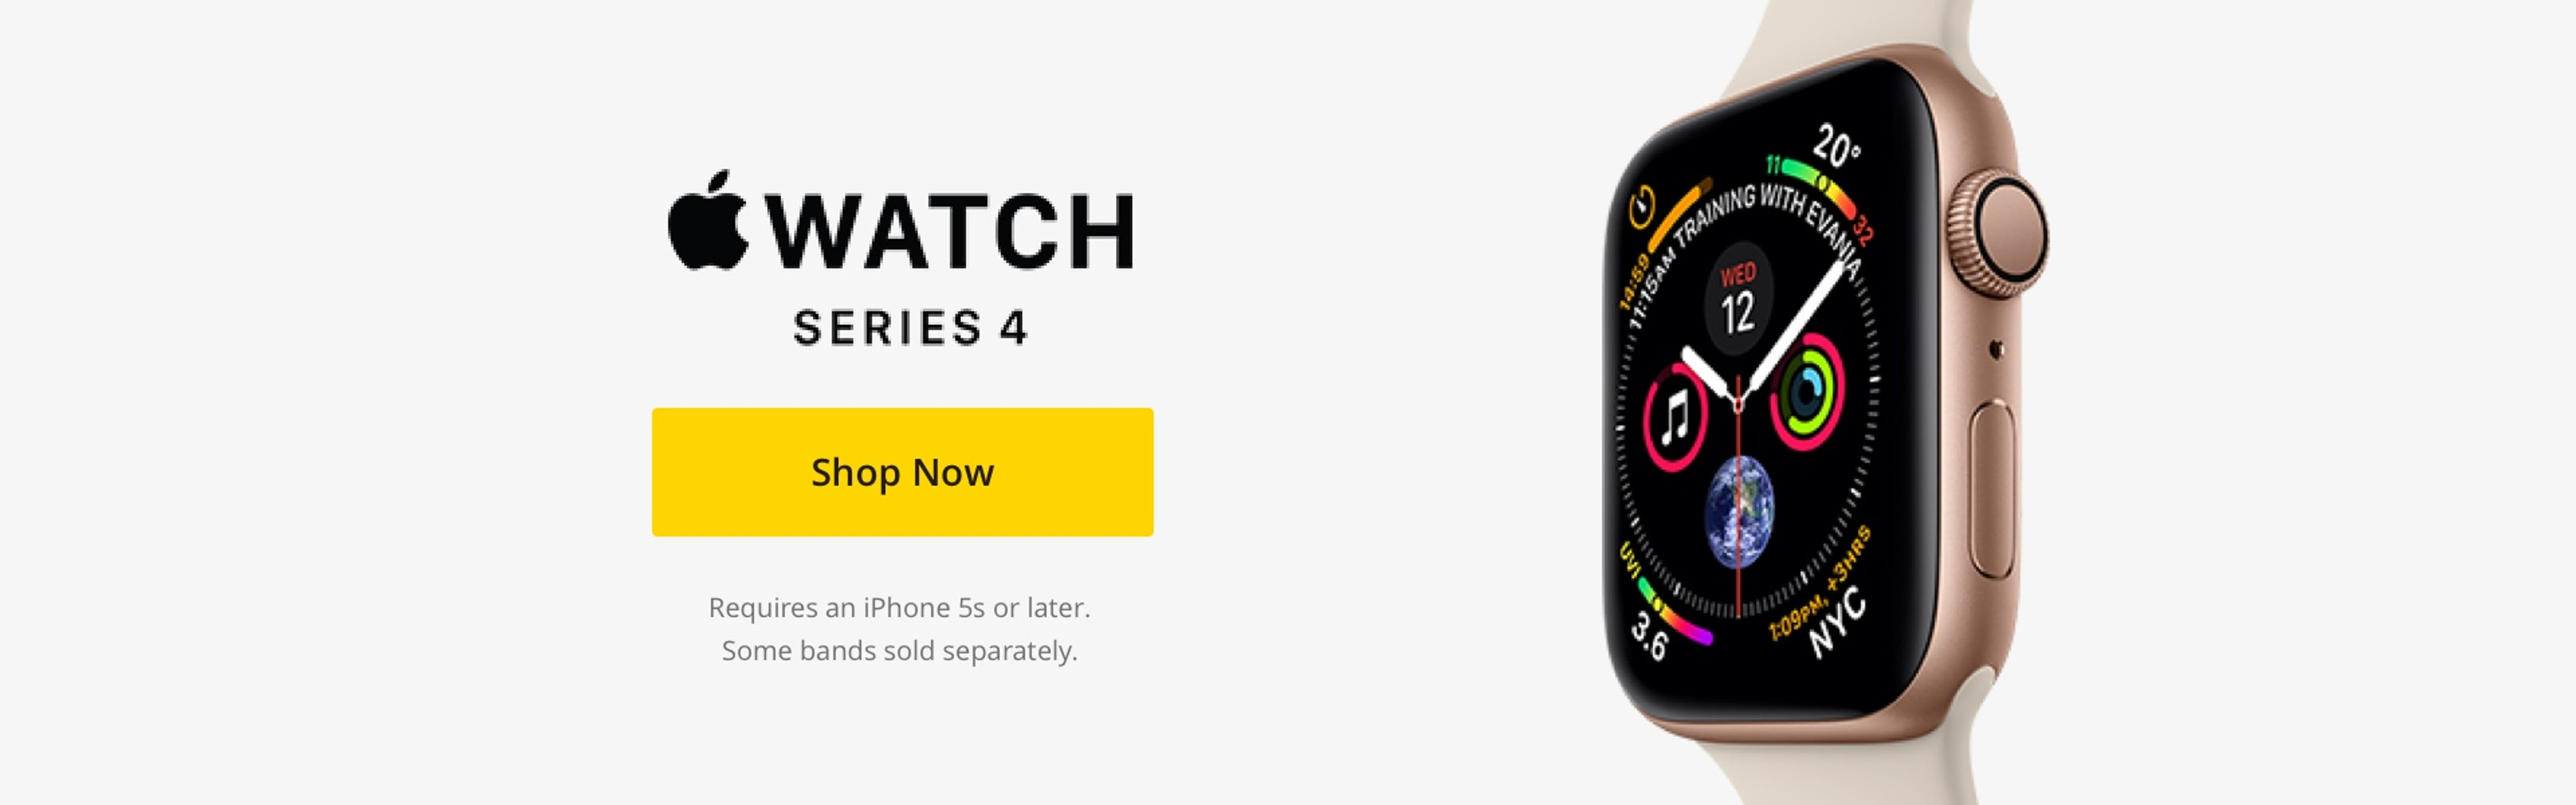 805c3002f Apple Watch  Series 4